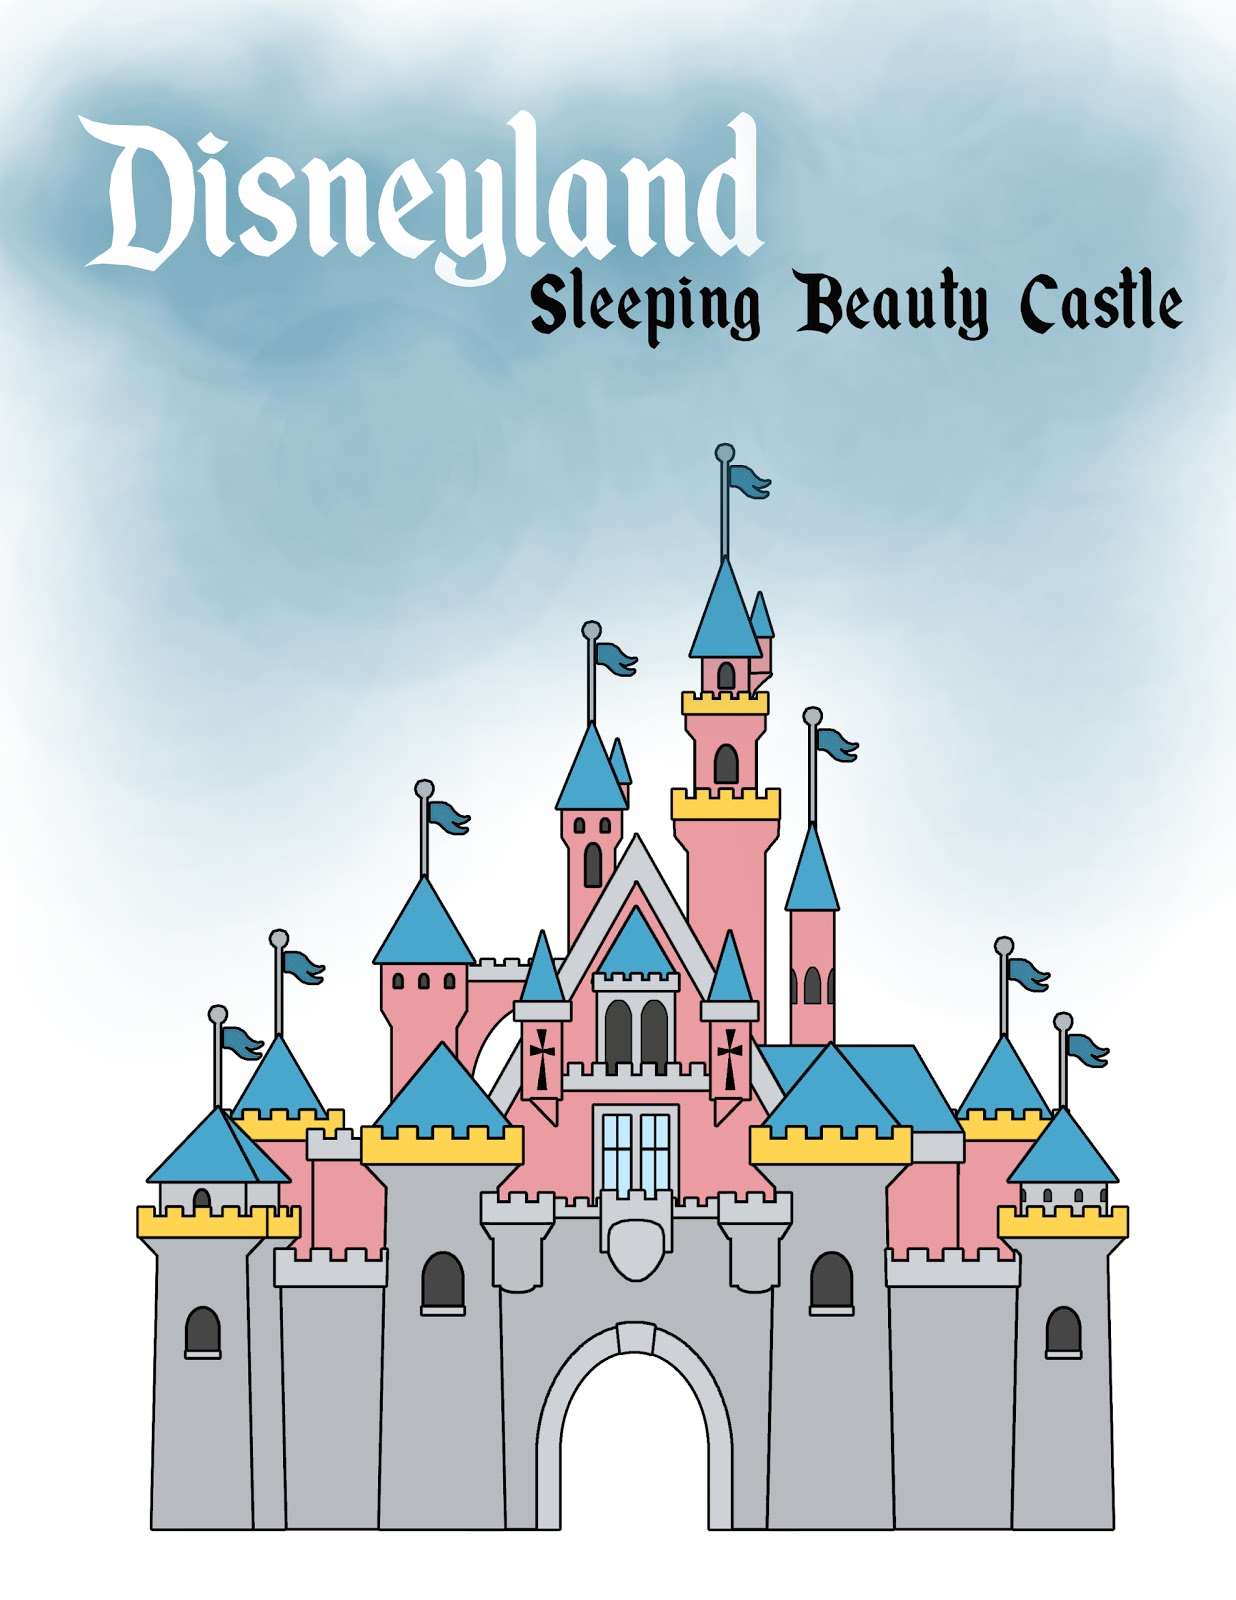 Disneyland castle drawing Disney Pinterest